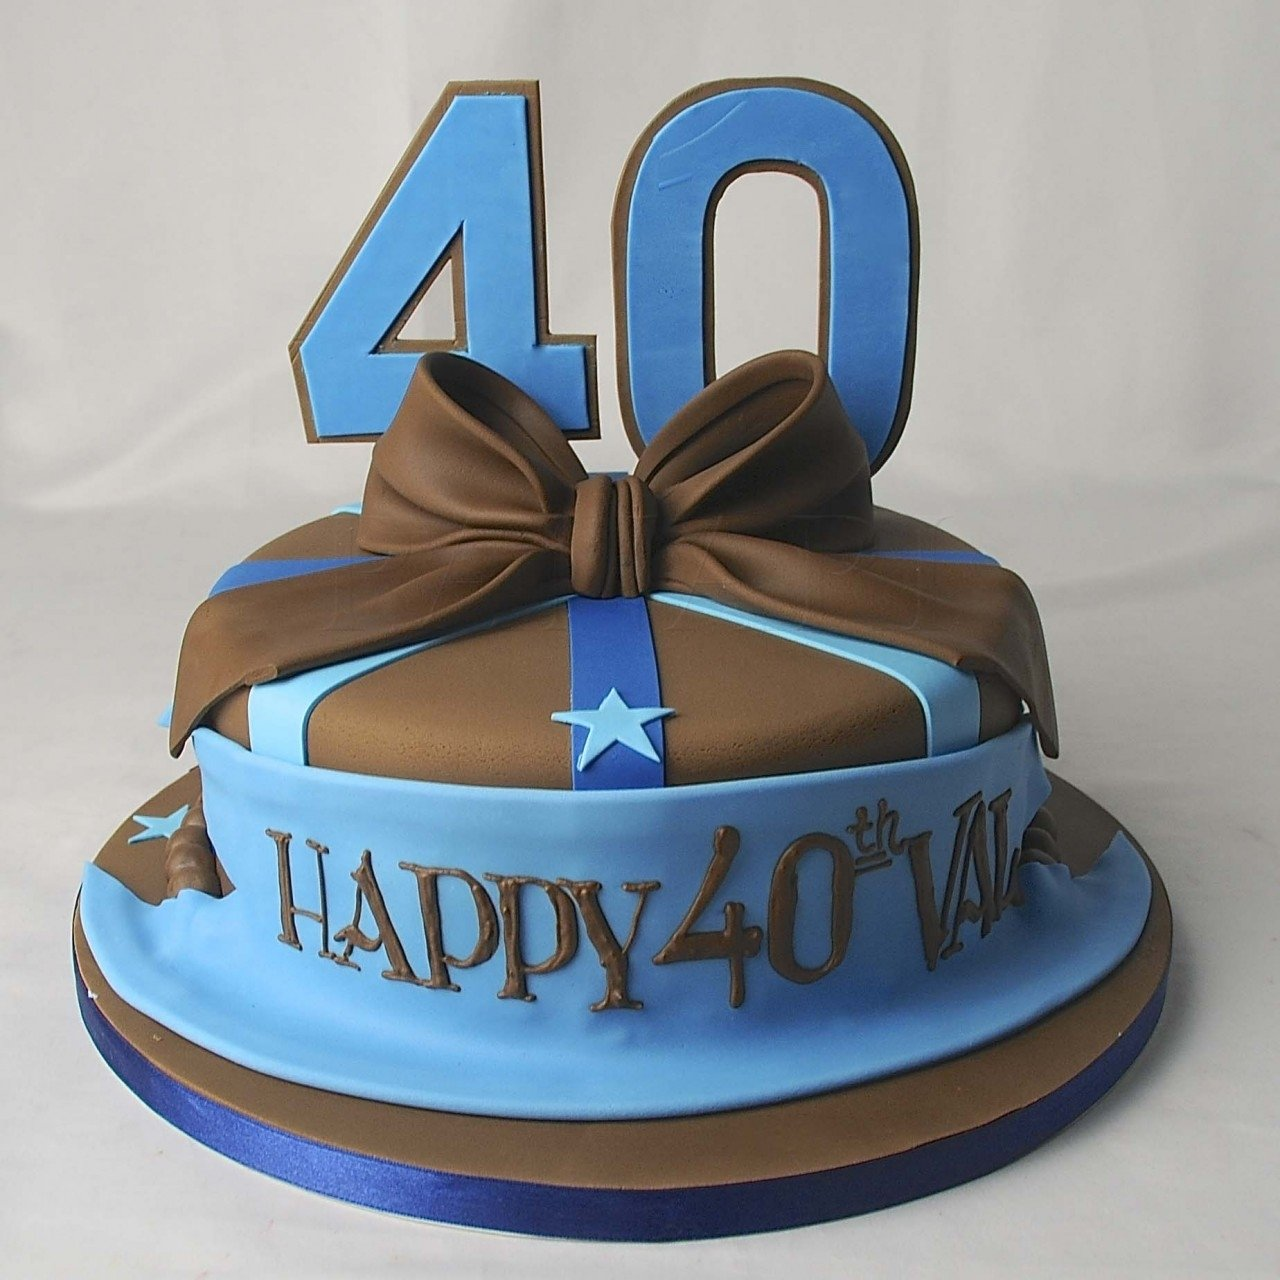 10 Cute Birthday Cakes For Men Ideas 40th Cake Google Search